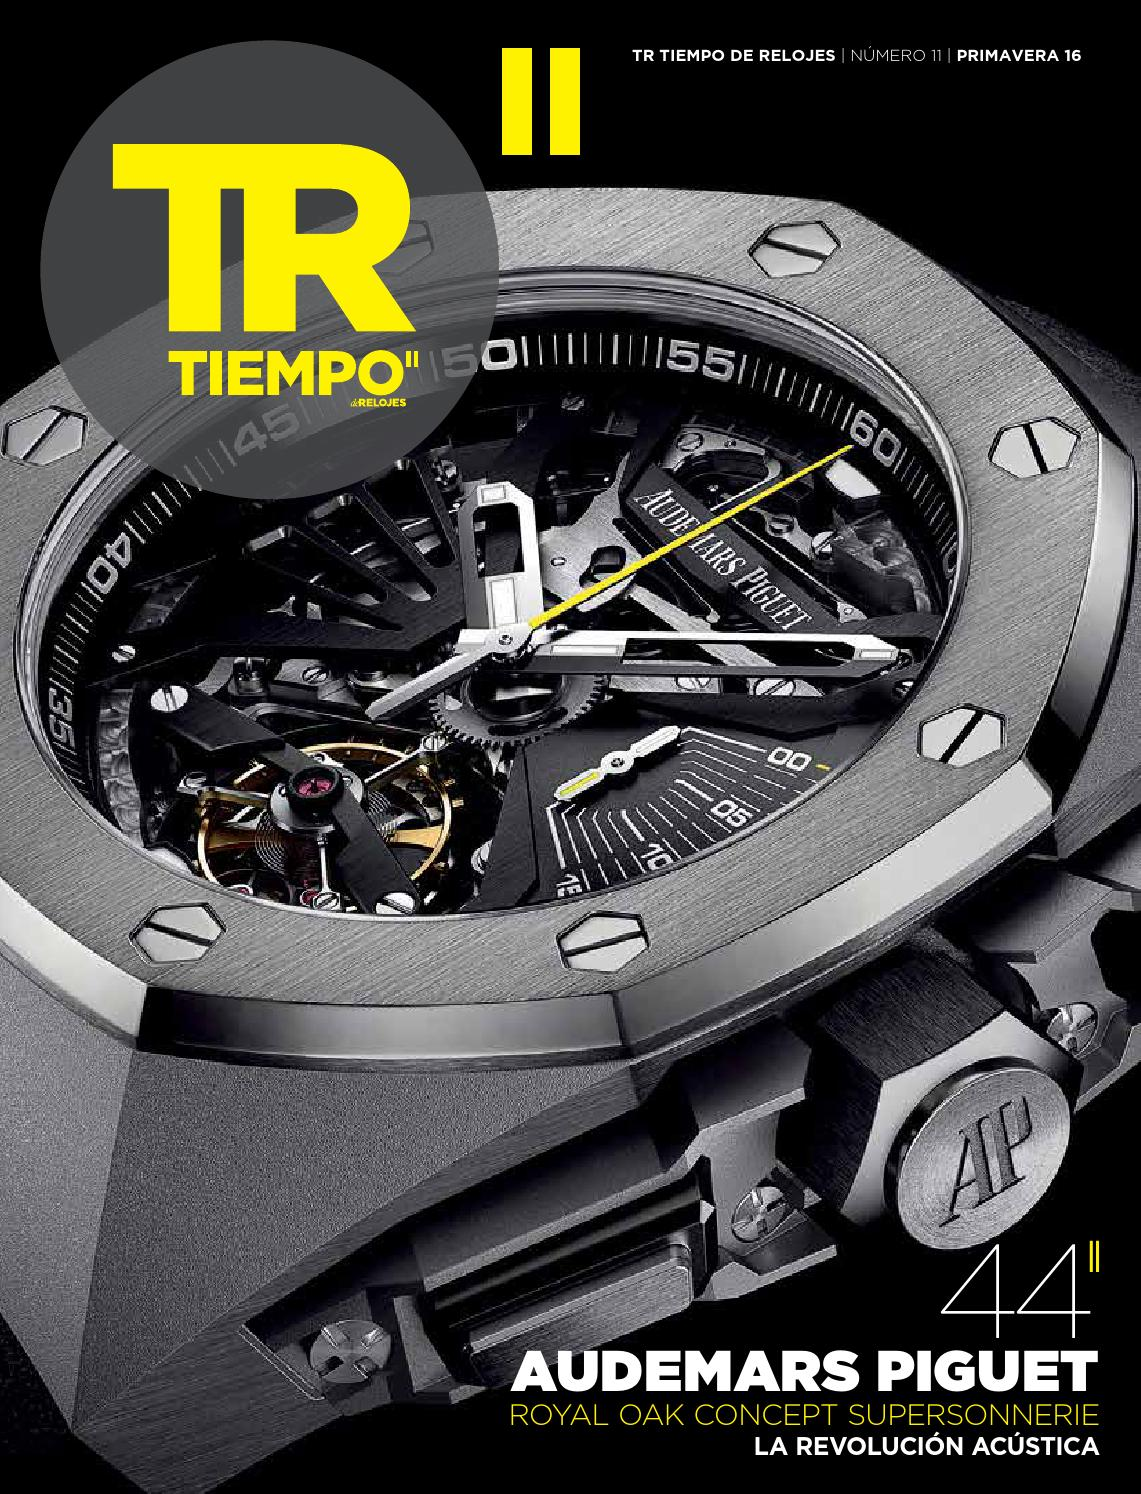 Tr tiempoderelojes numero 11 by Ed-Tourbillon.Spain - issuu 9d06806dcfc5